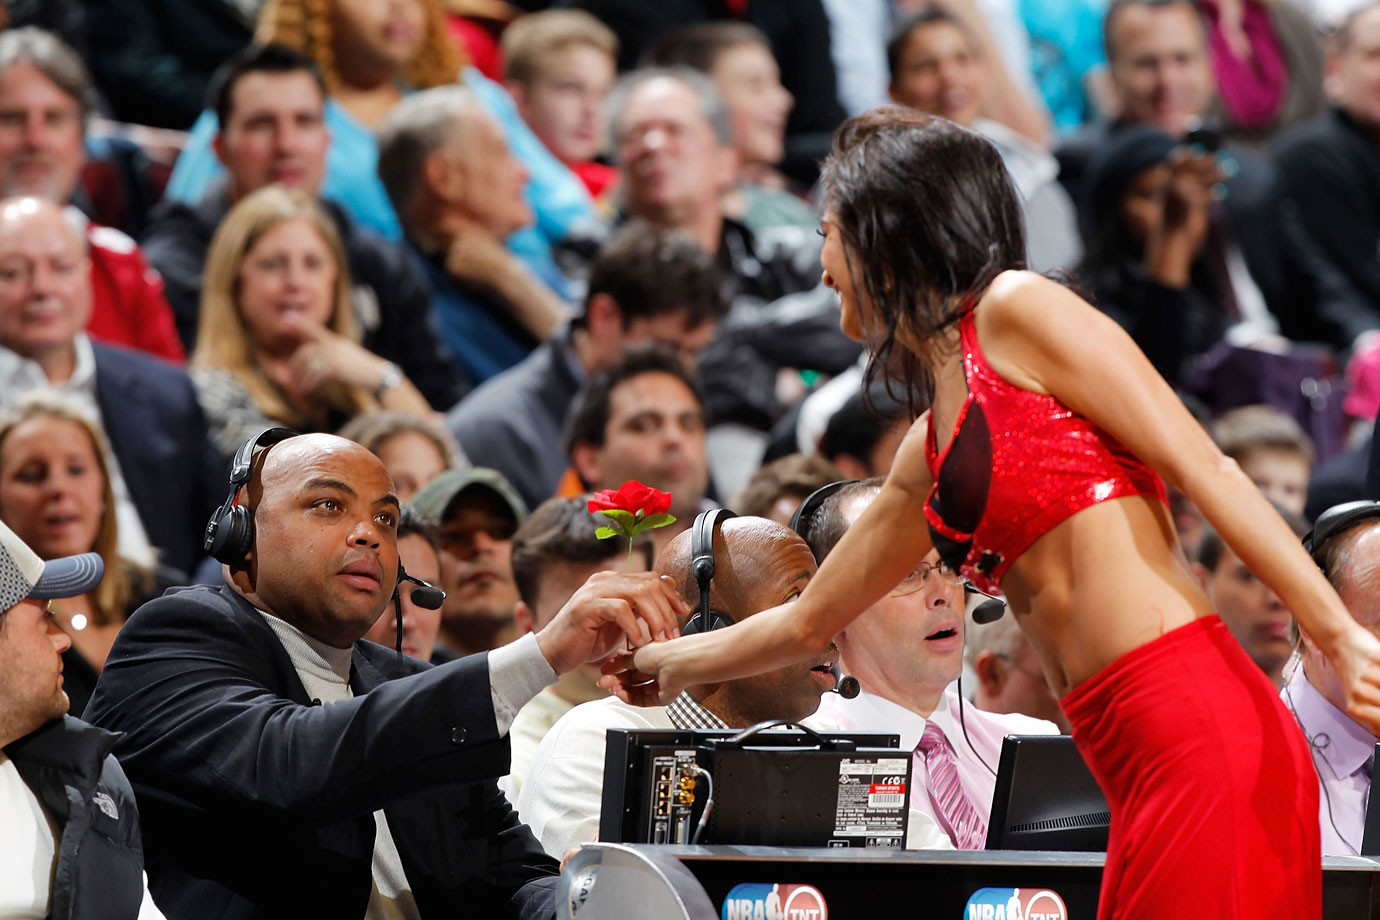 Charles Barkley gives a Chicago Bulls Luvabulls dancer a flower while broadcasting a Bulls-Heat game. Upon retiring from the NBA in 2000, Barkley quickly went into broadcasting, working as both a studio and color analyst for basketball games.